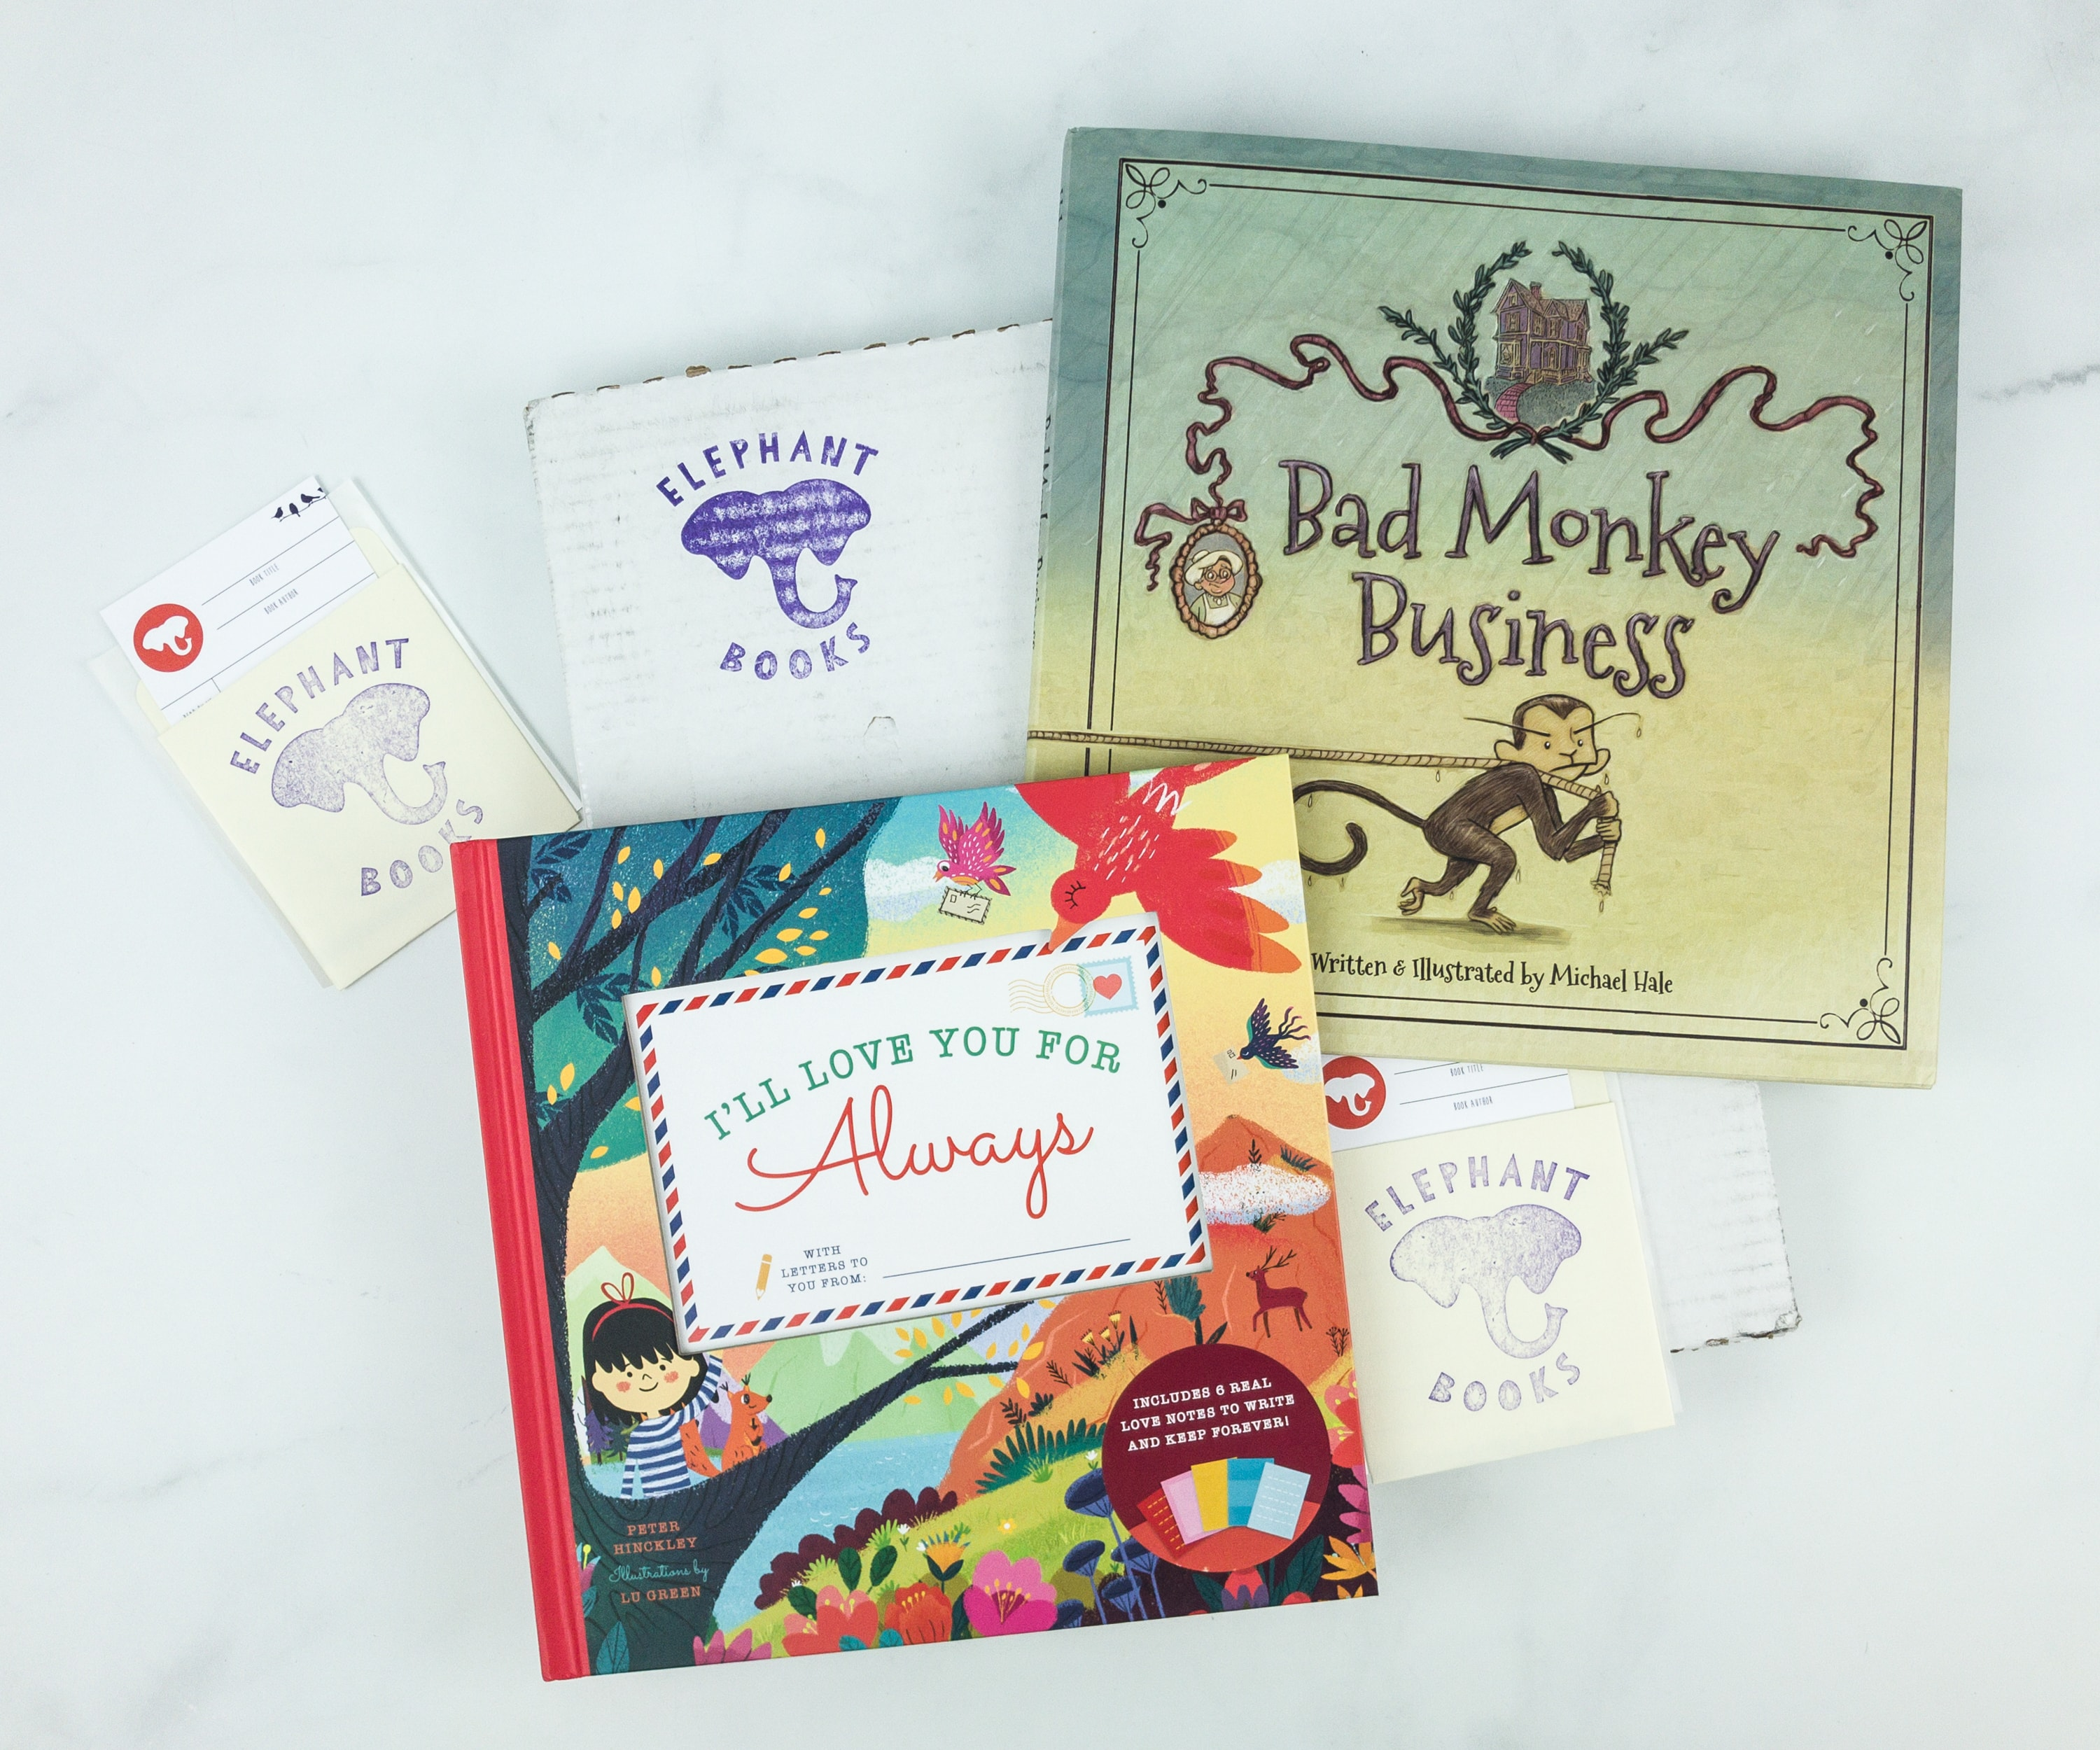 Elephant Books June 2019 Subscription Box Reviews – PICTURE BOOKS